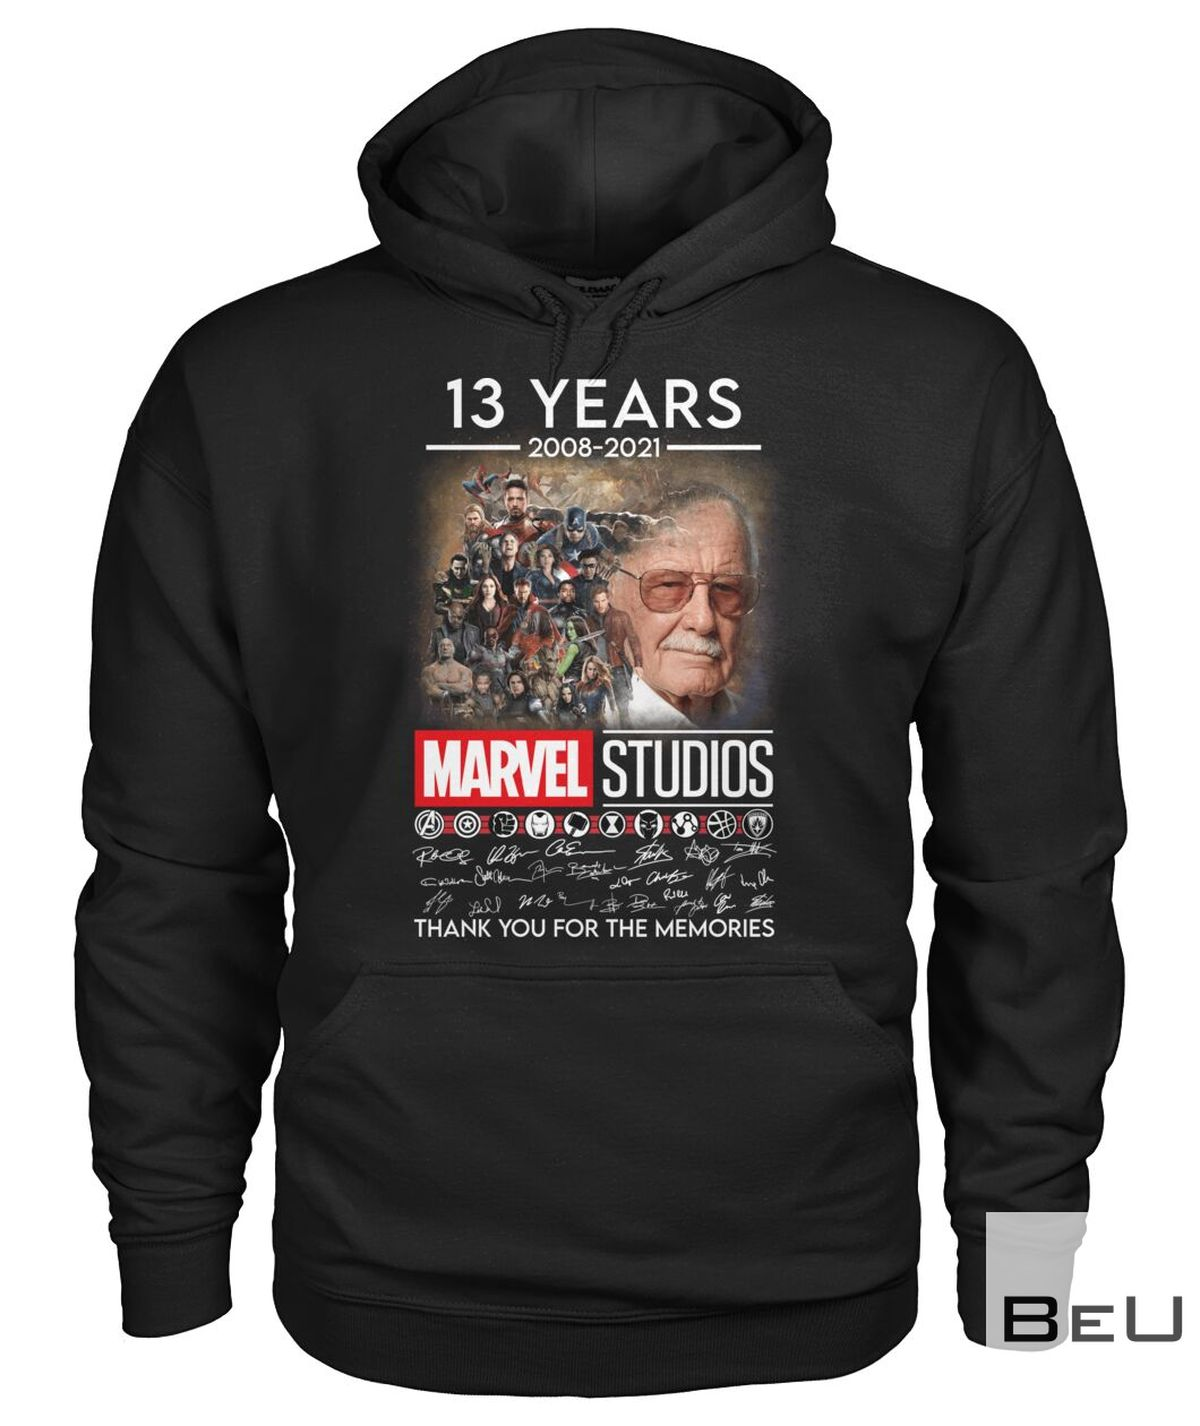 13 Years 2008 2021 Marvel Studios Thank You For The Memories Shirtz